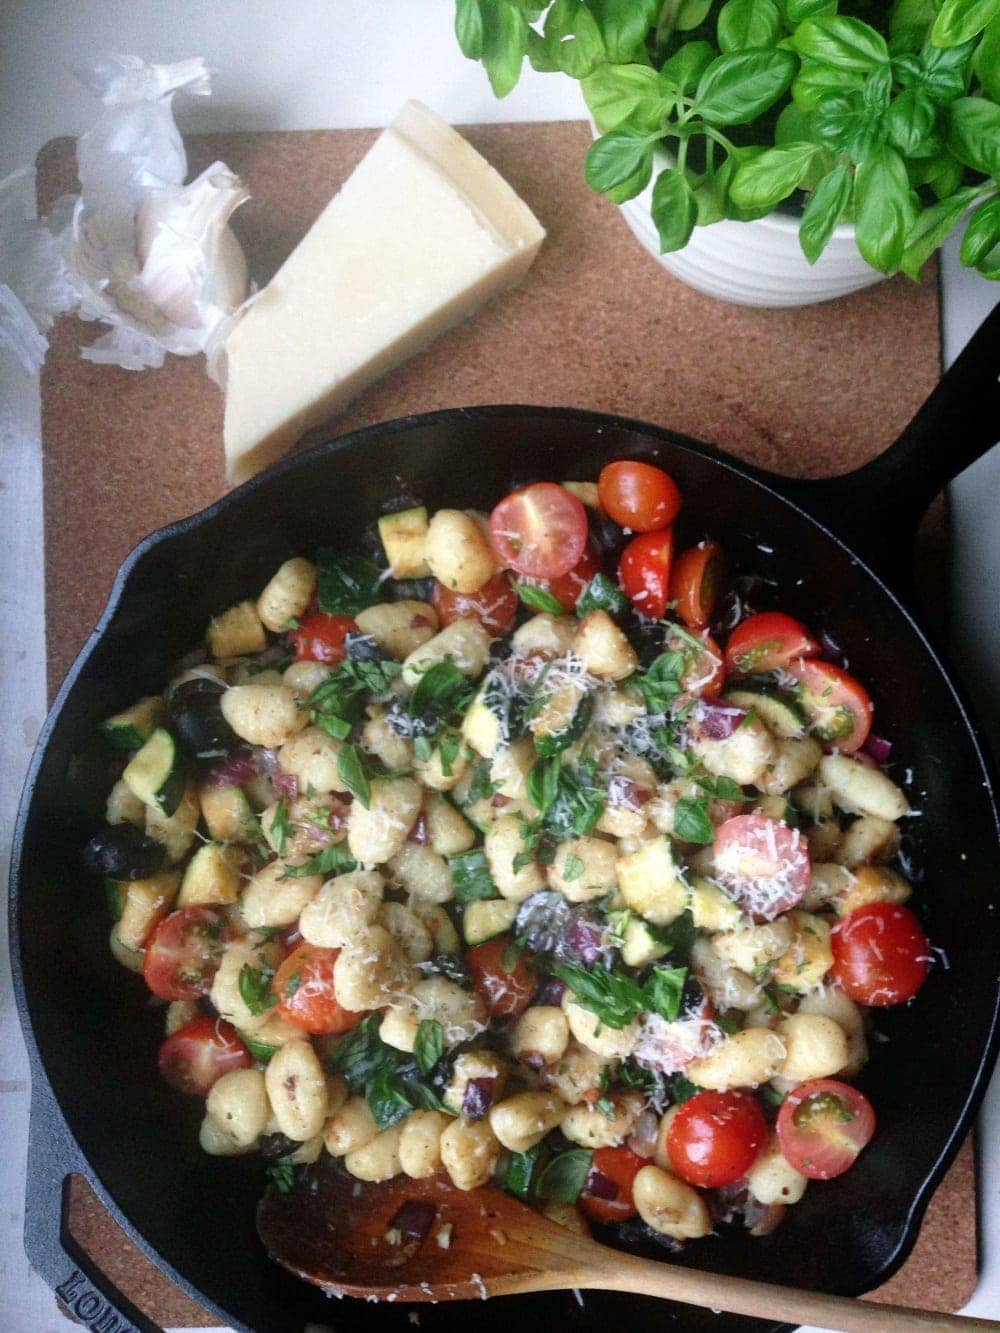 This summer gnocchi skillet is full of fresh vegetables and chewy pillows of gnocchi. It only takes one pan and can come together in half an hour.